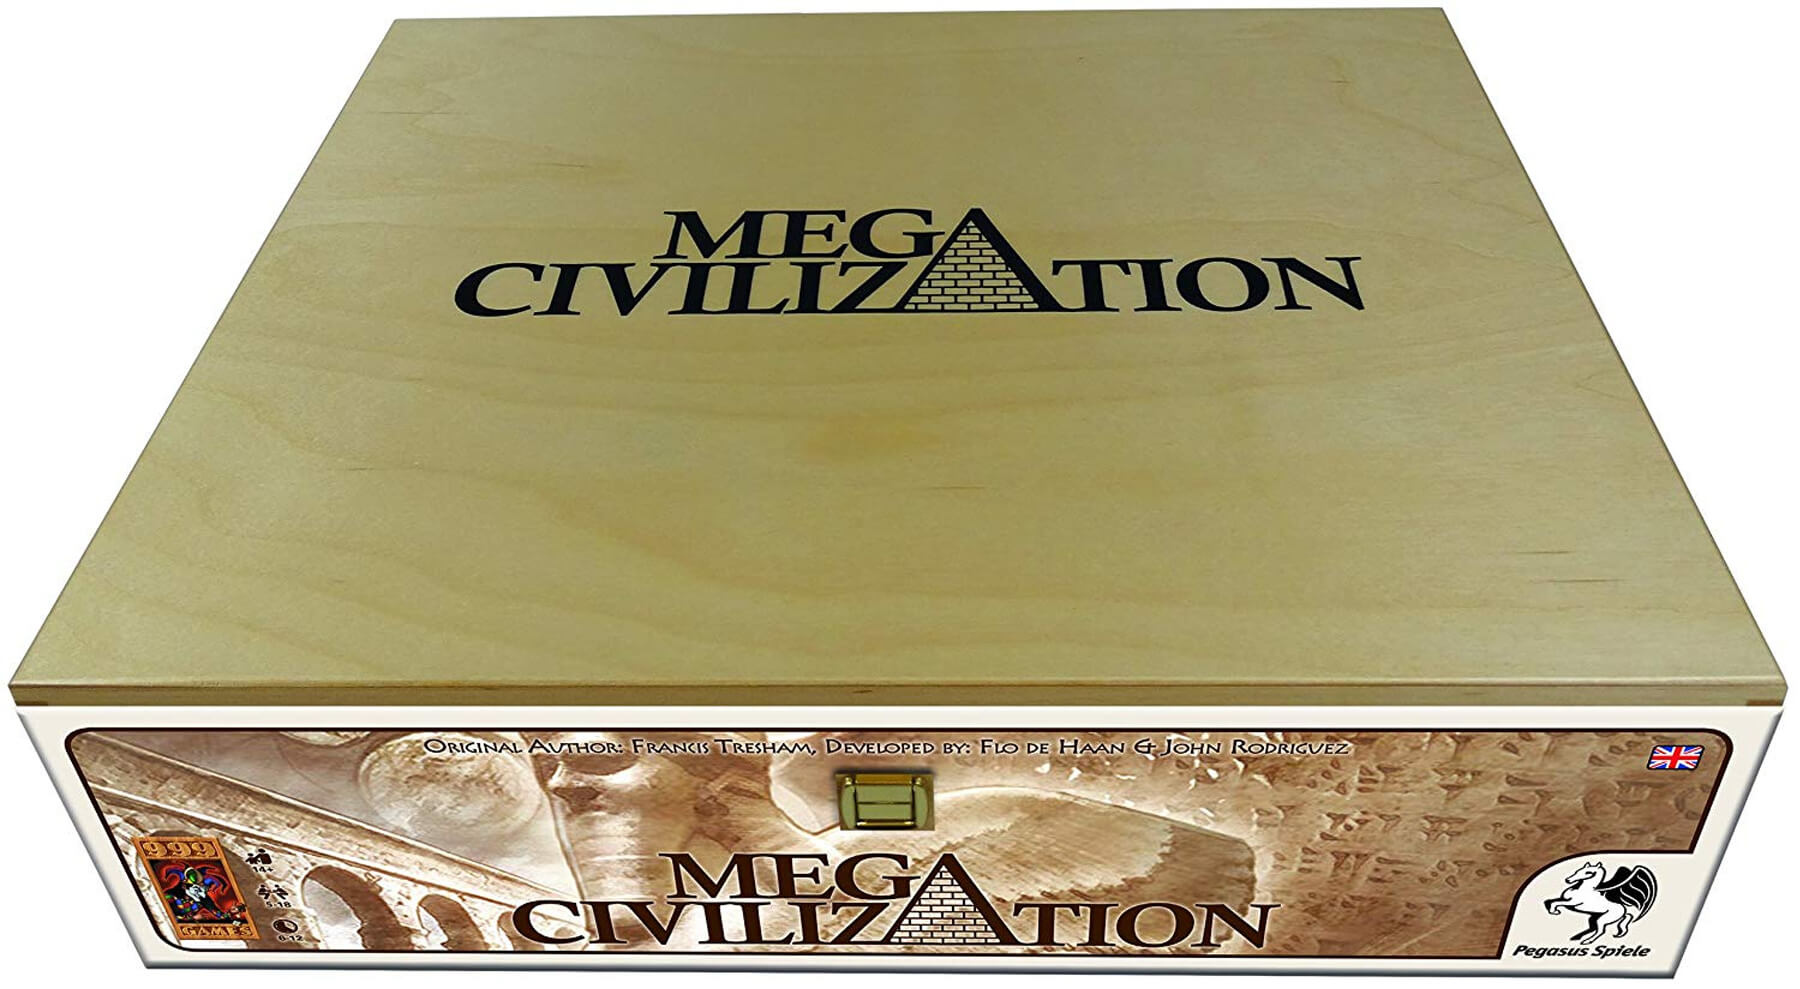 The cover art for the board game Mega Civilization.